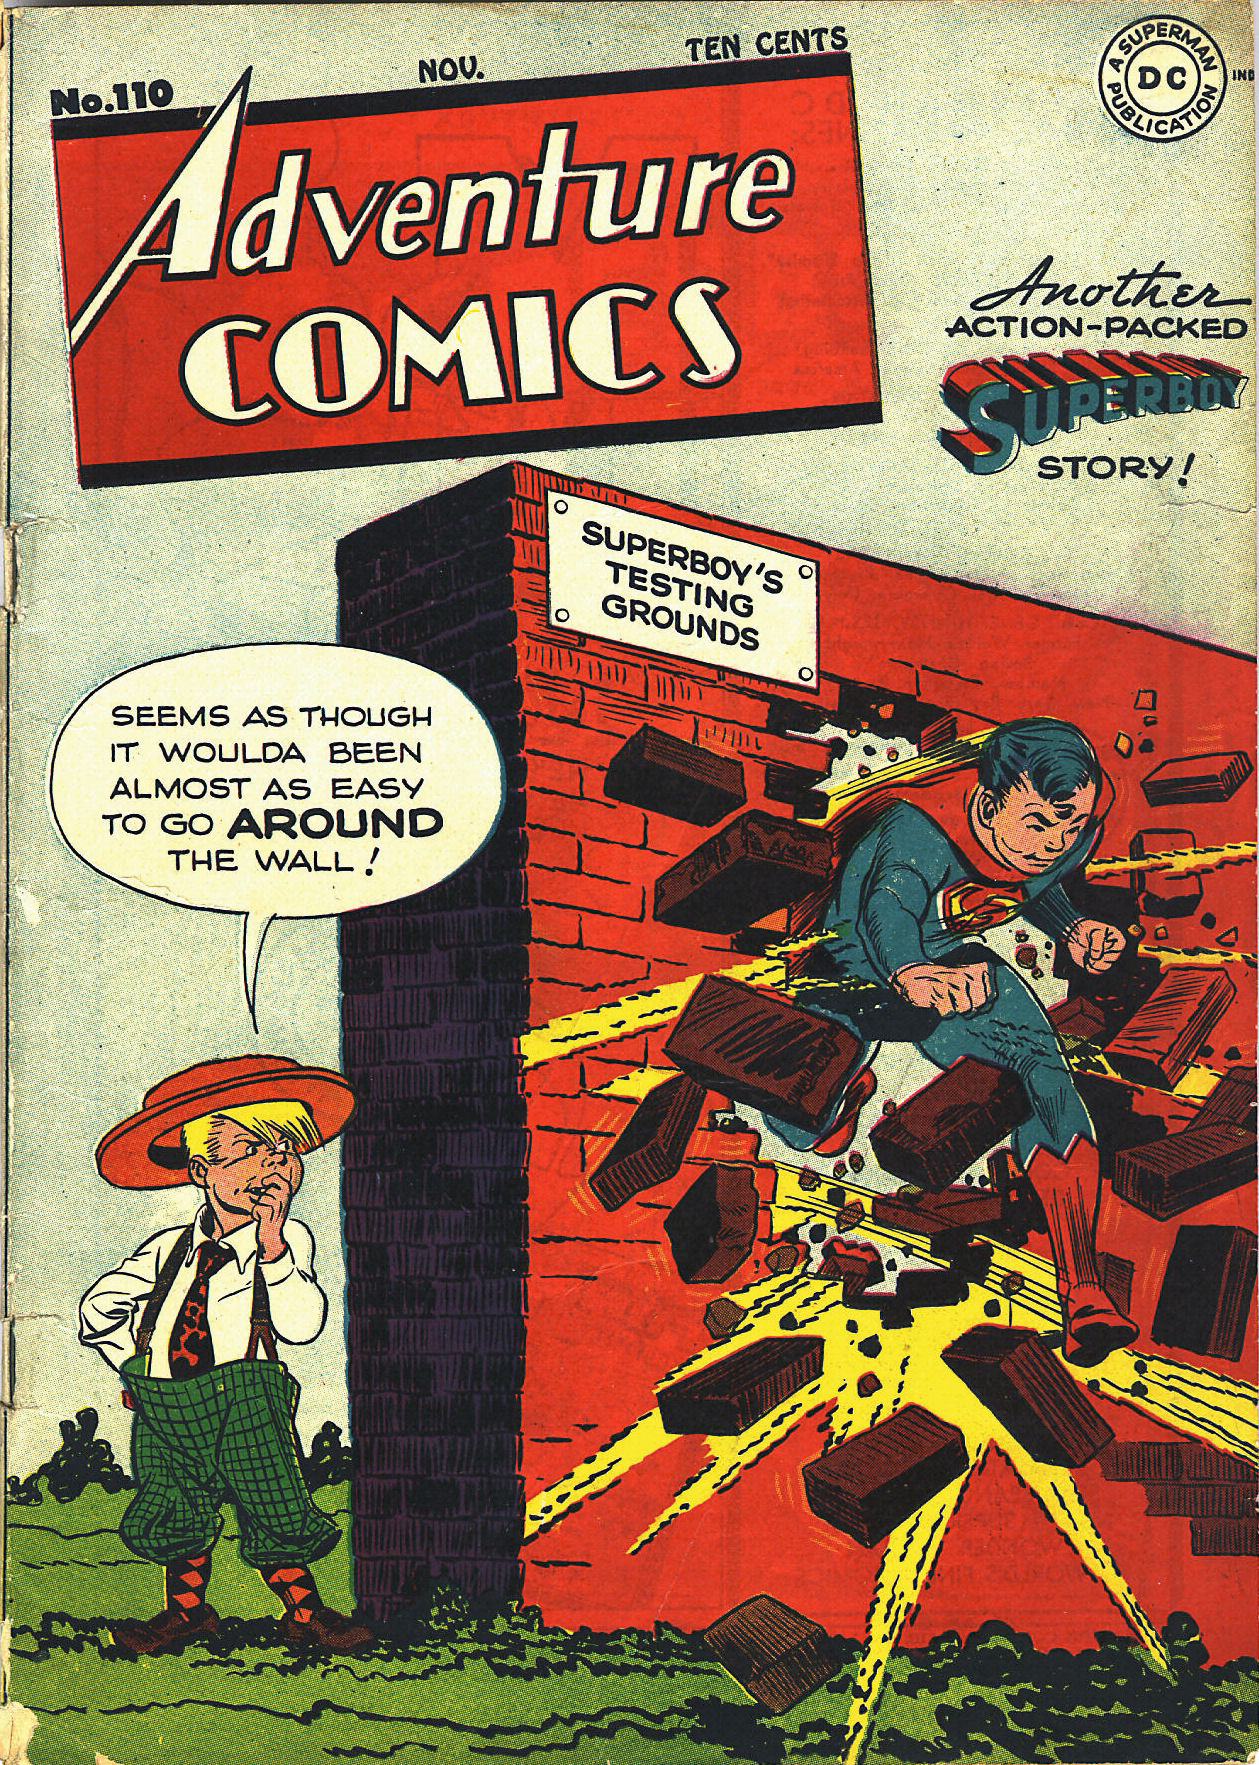 Read online Adventure Comics (1938) comic -  Issue #110 - 2